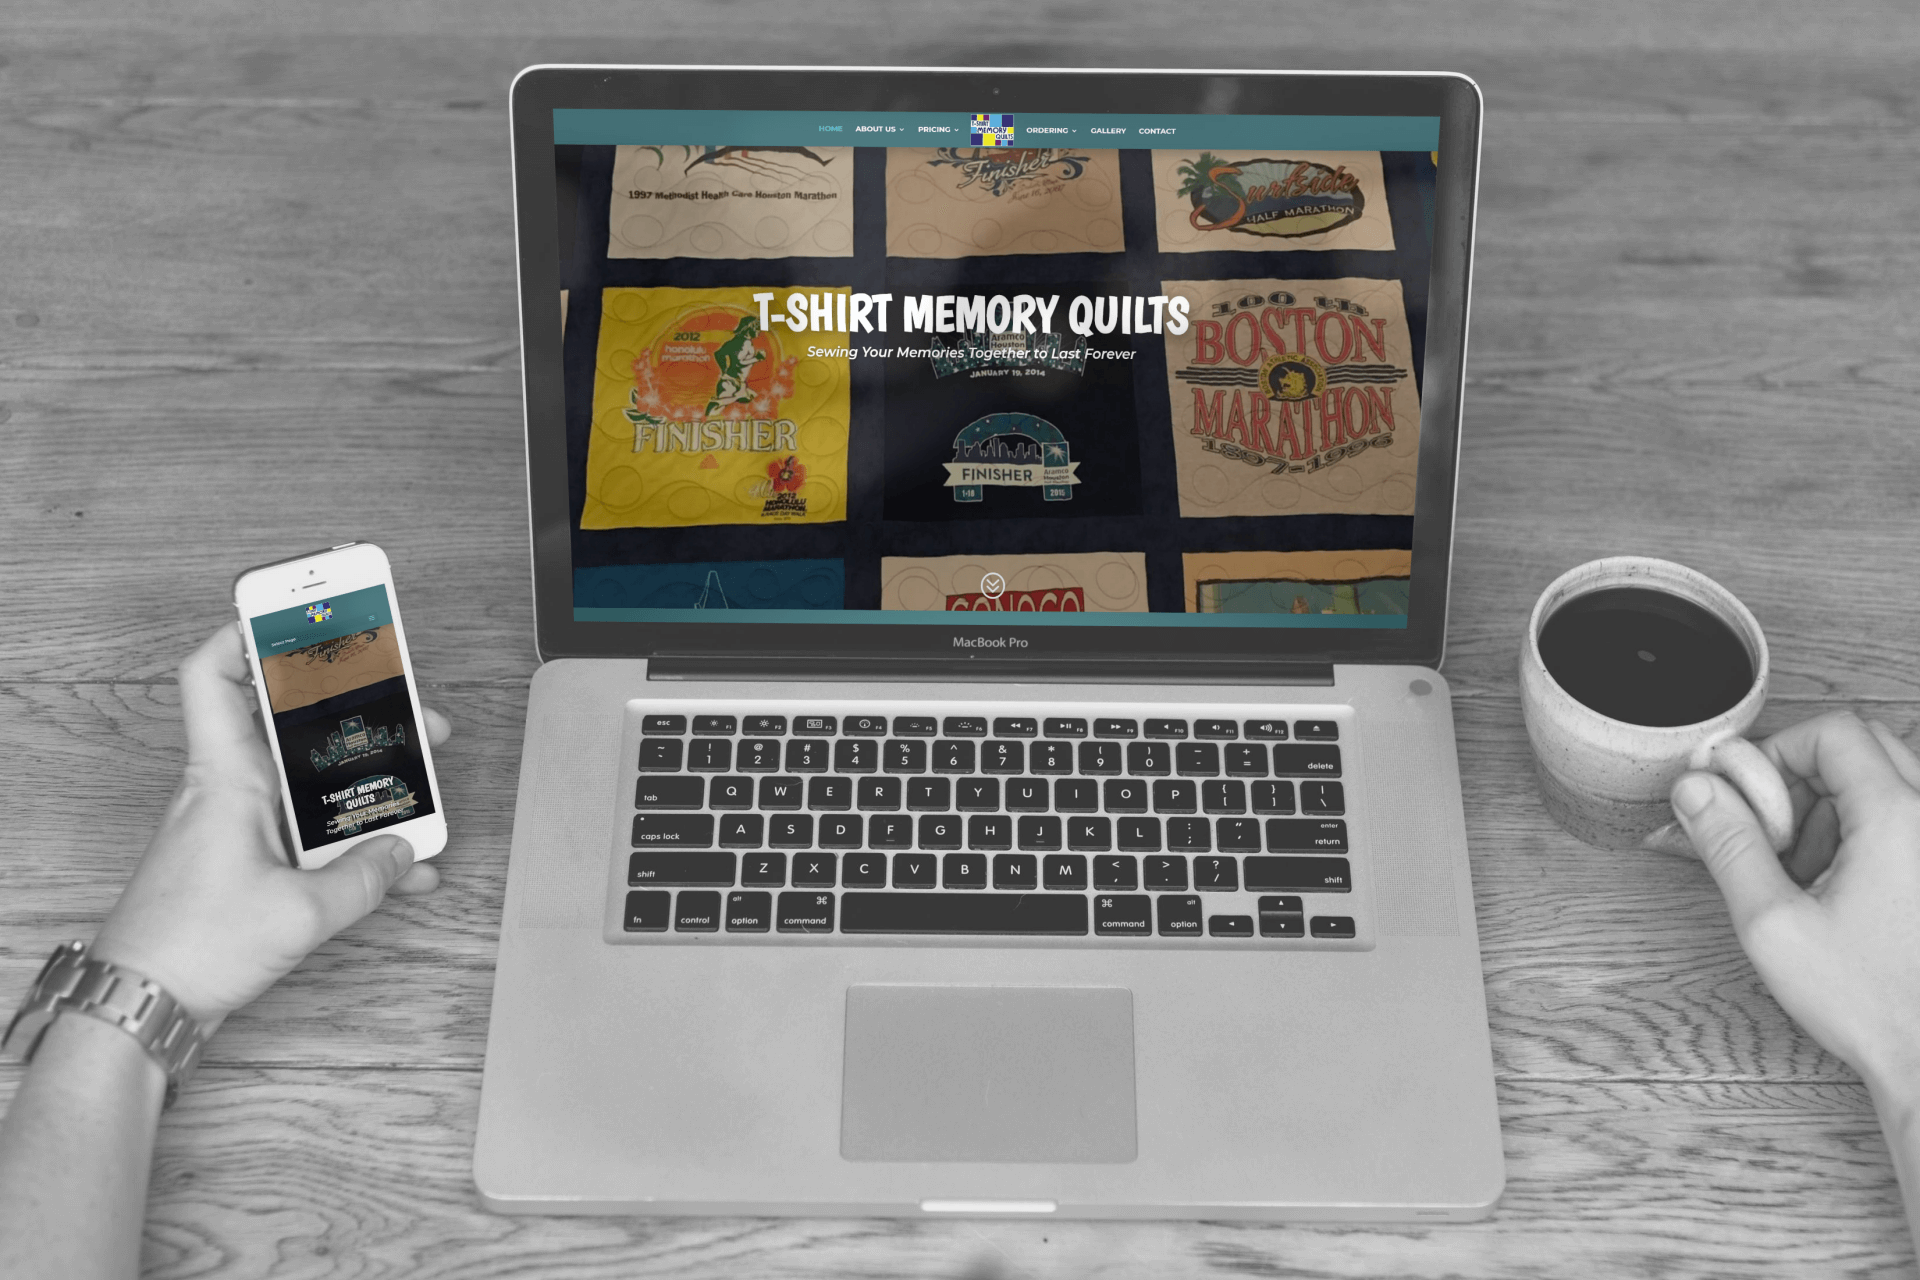 T-Shirt Memory Quilts - Small Business Website Design by WizardsWebs Design LLC